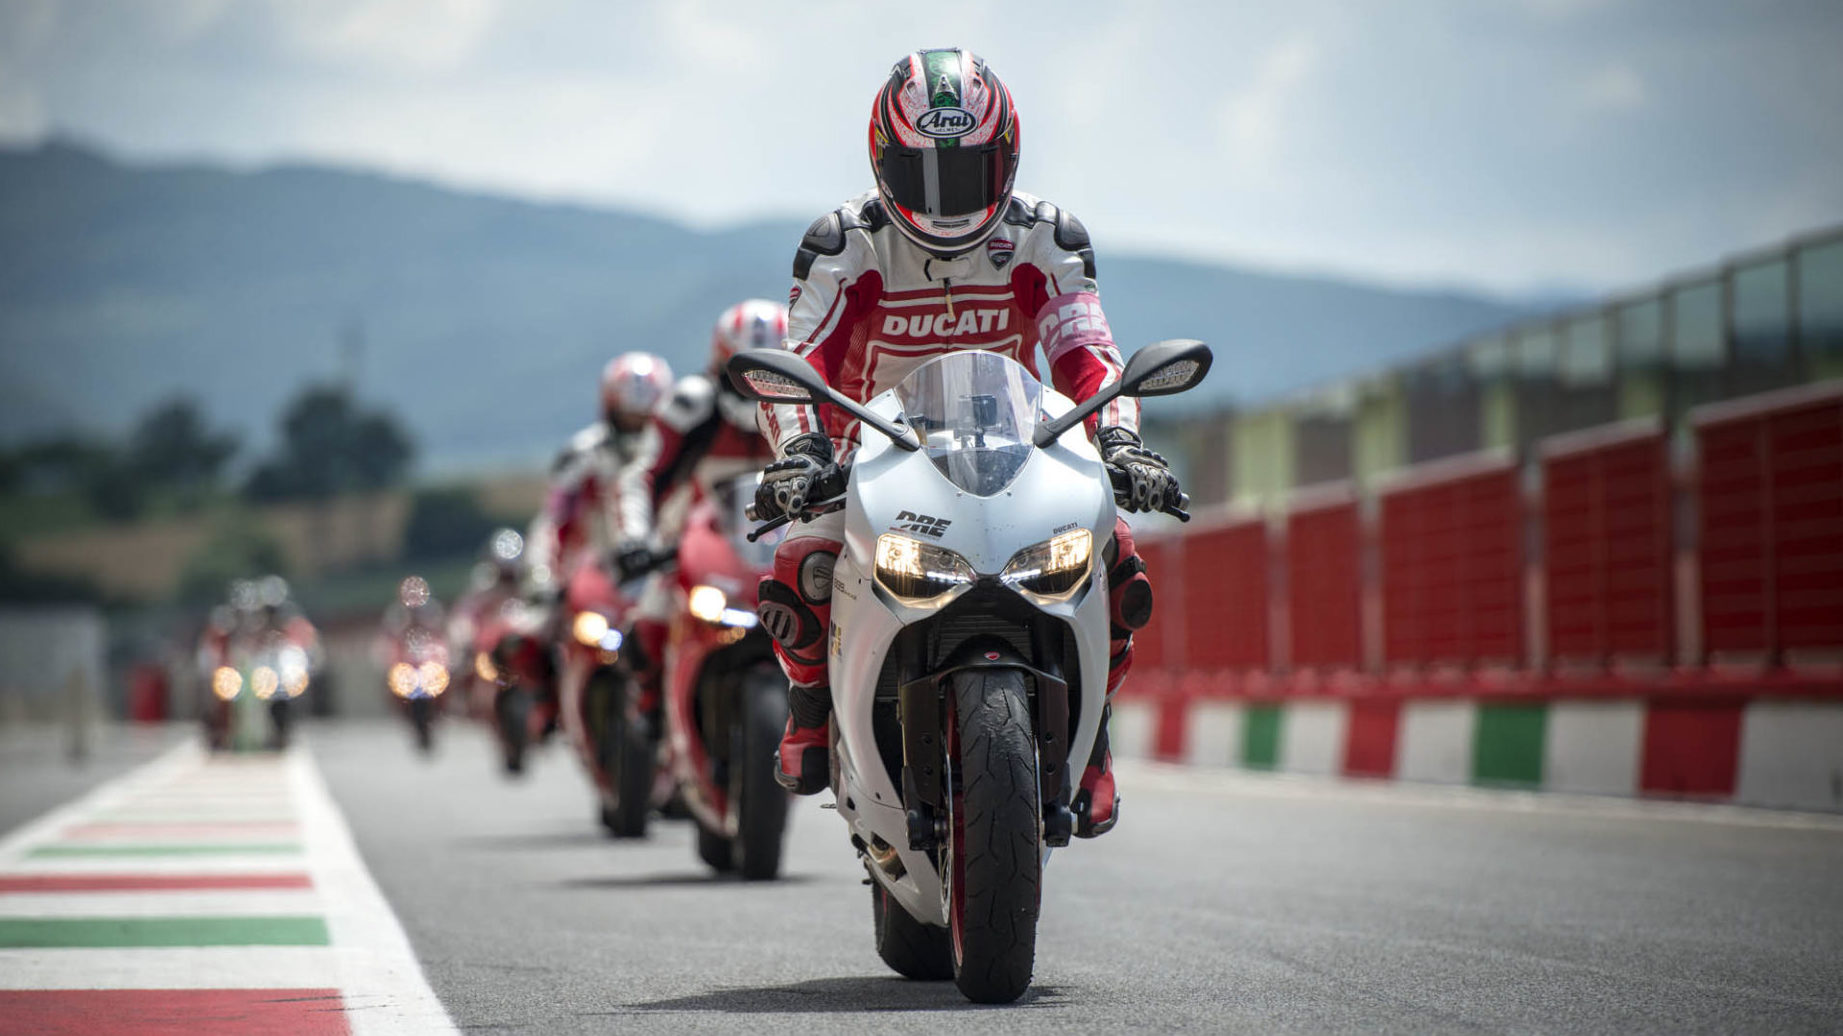 Track Warm up session 1 - Ducati Riding Experience